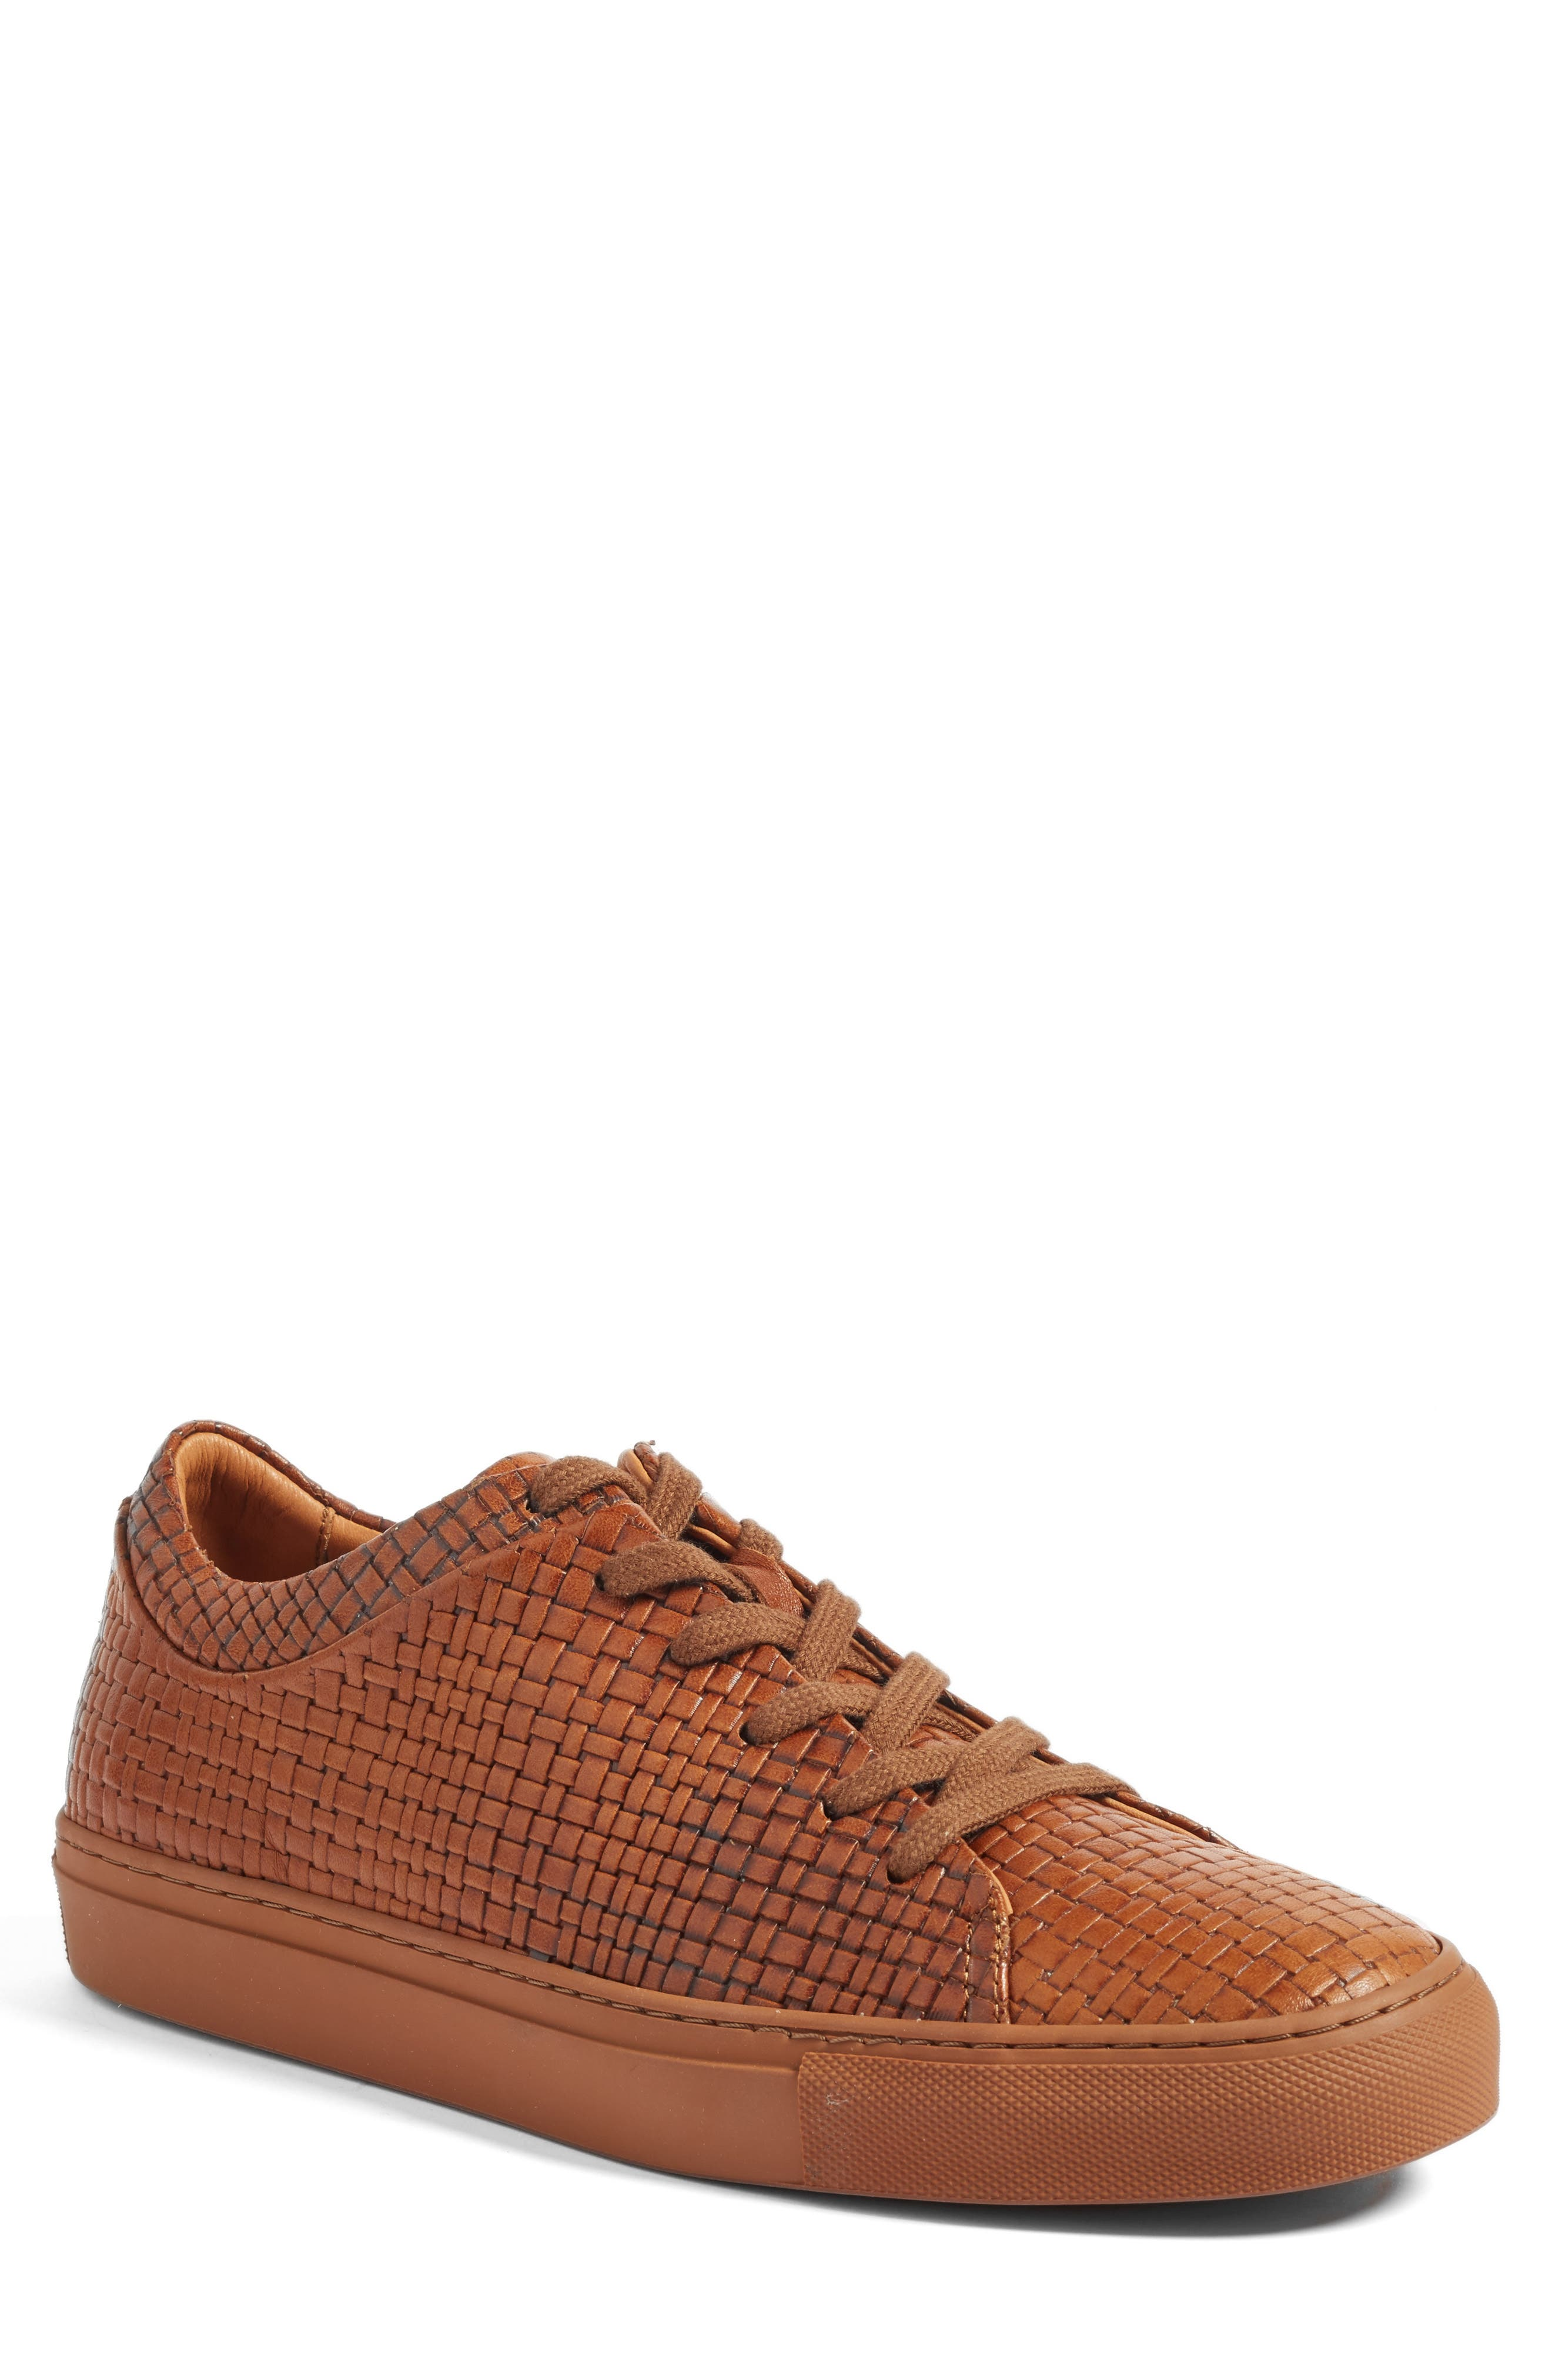 Aquatalia Alaric Sneaker (Men)